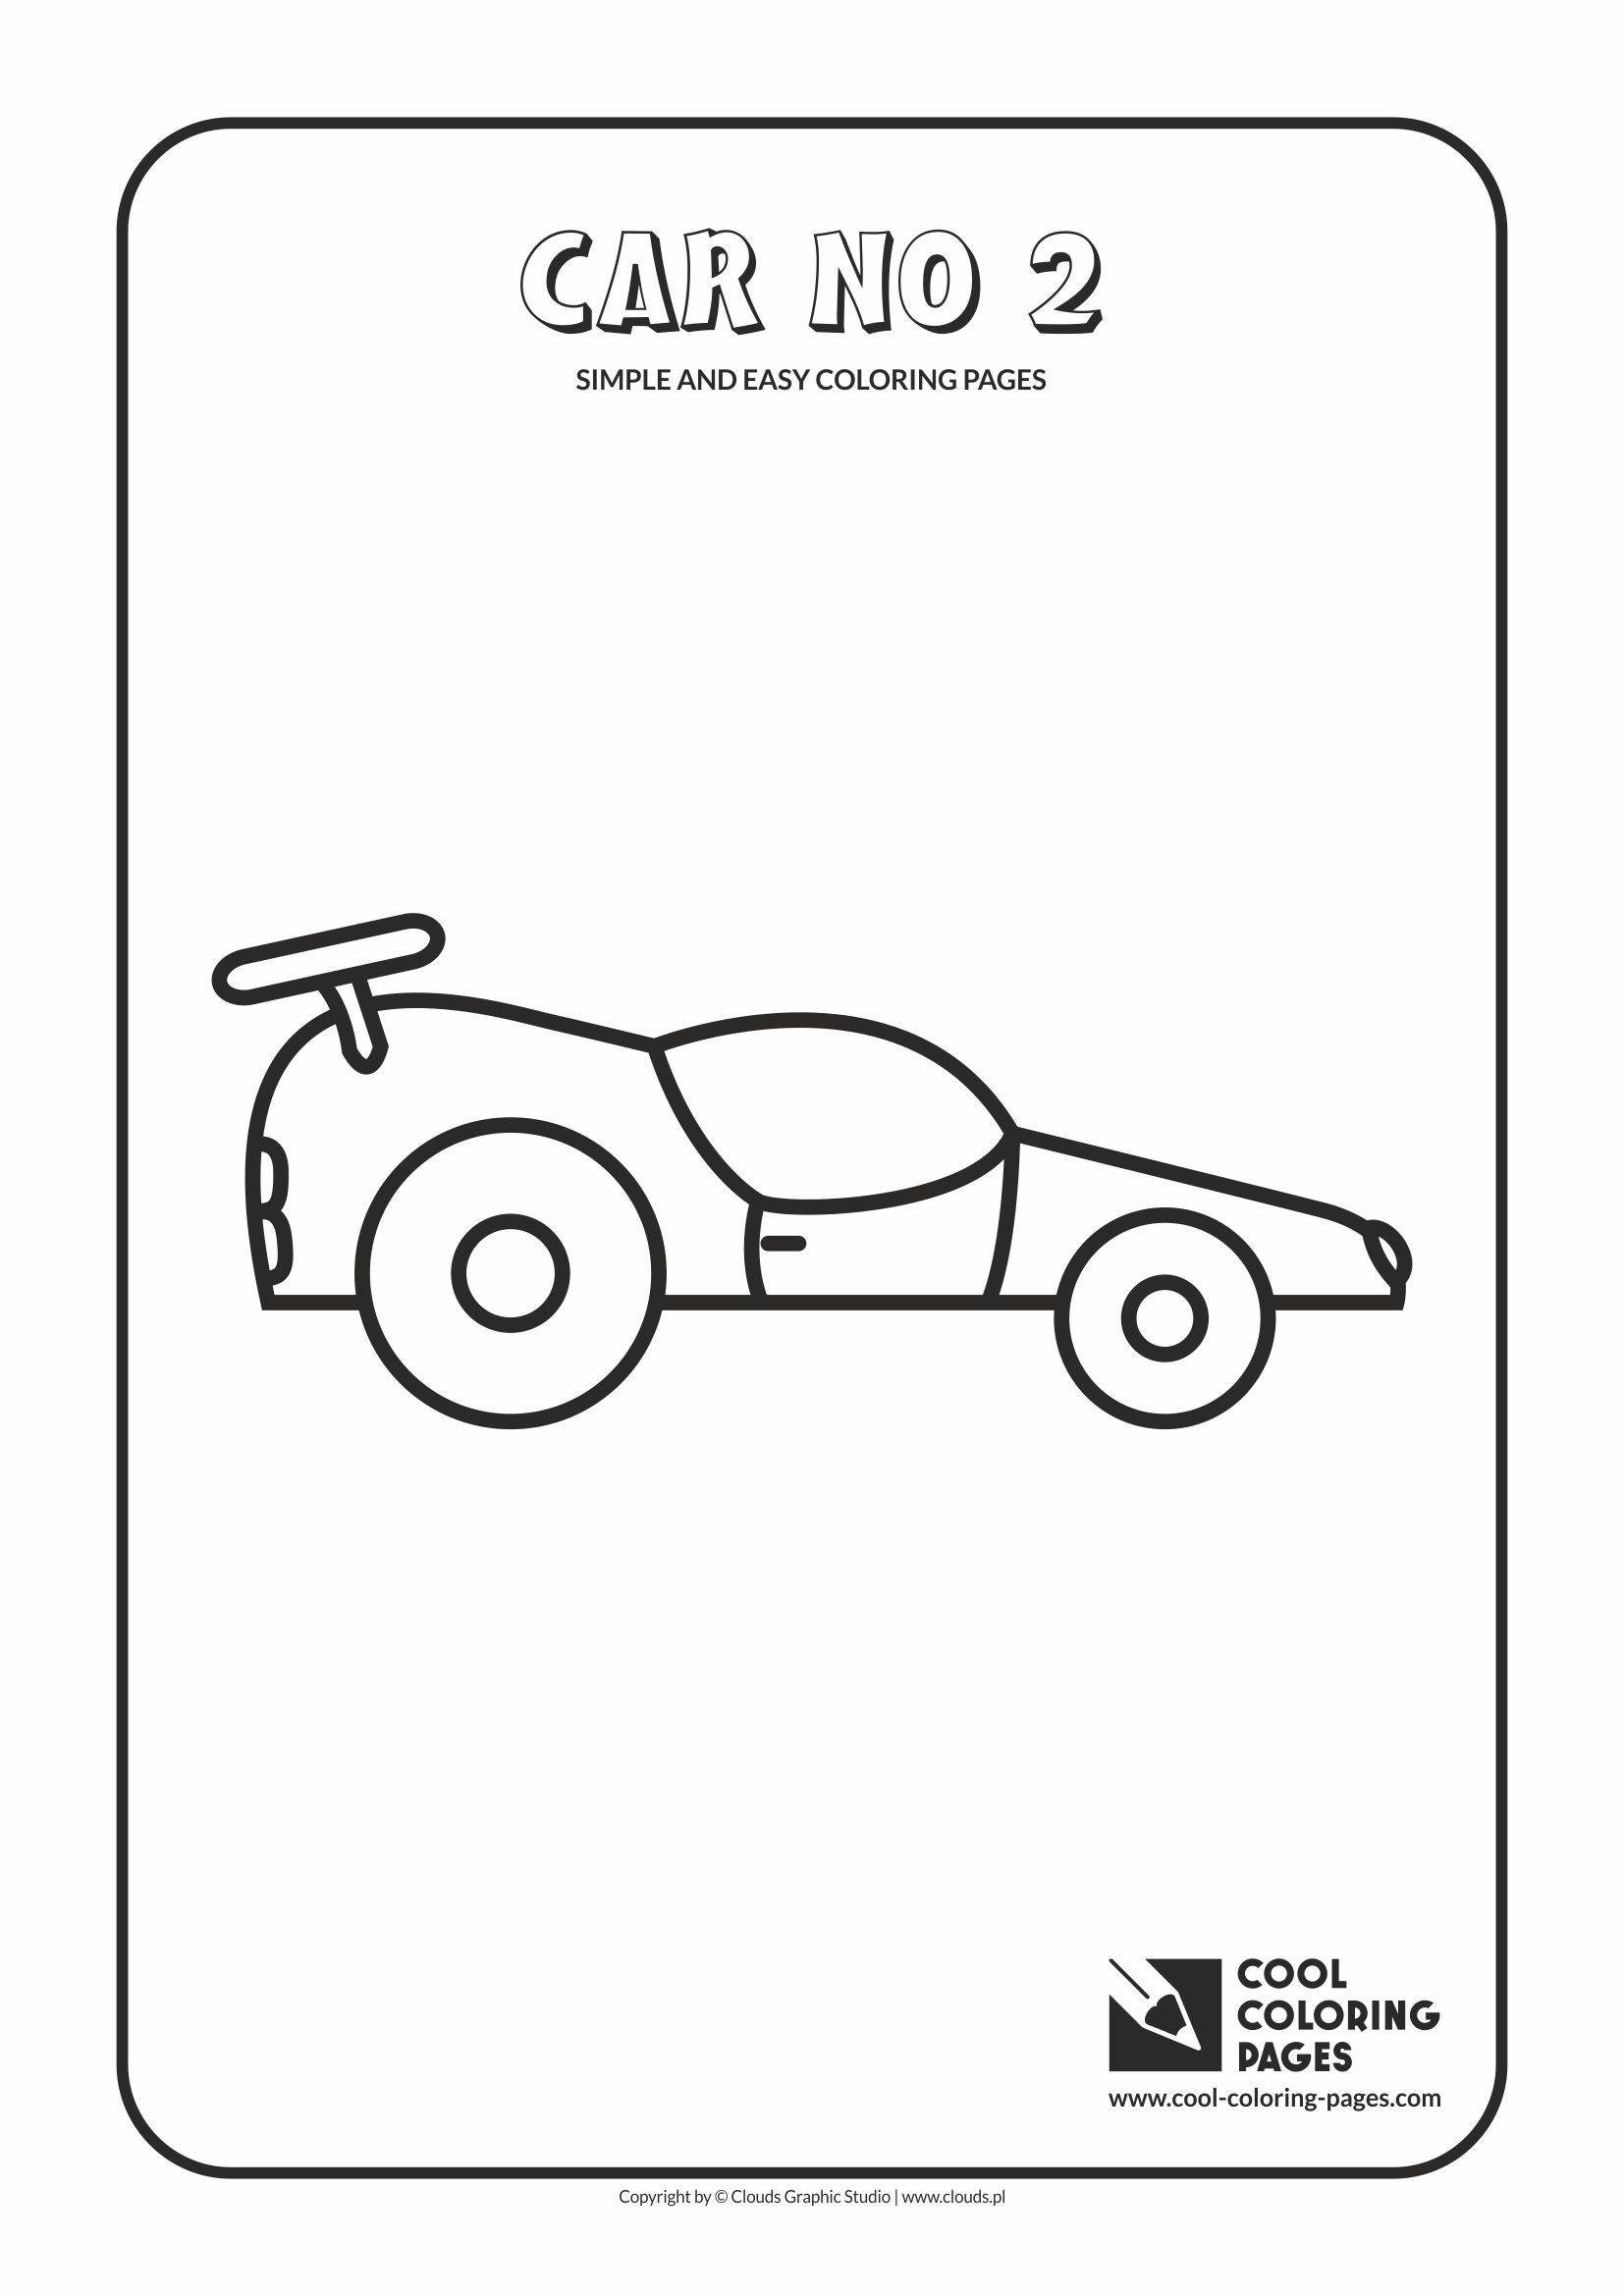 Simple and easy coloring pages for toddlers - Car no 2